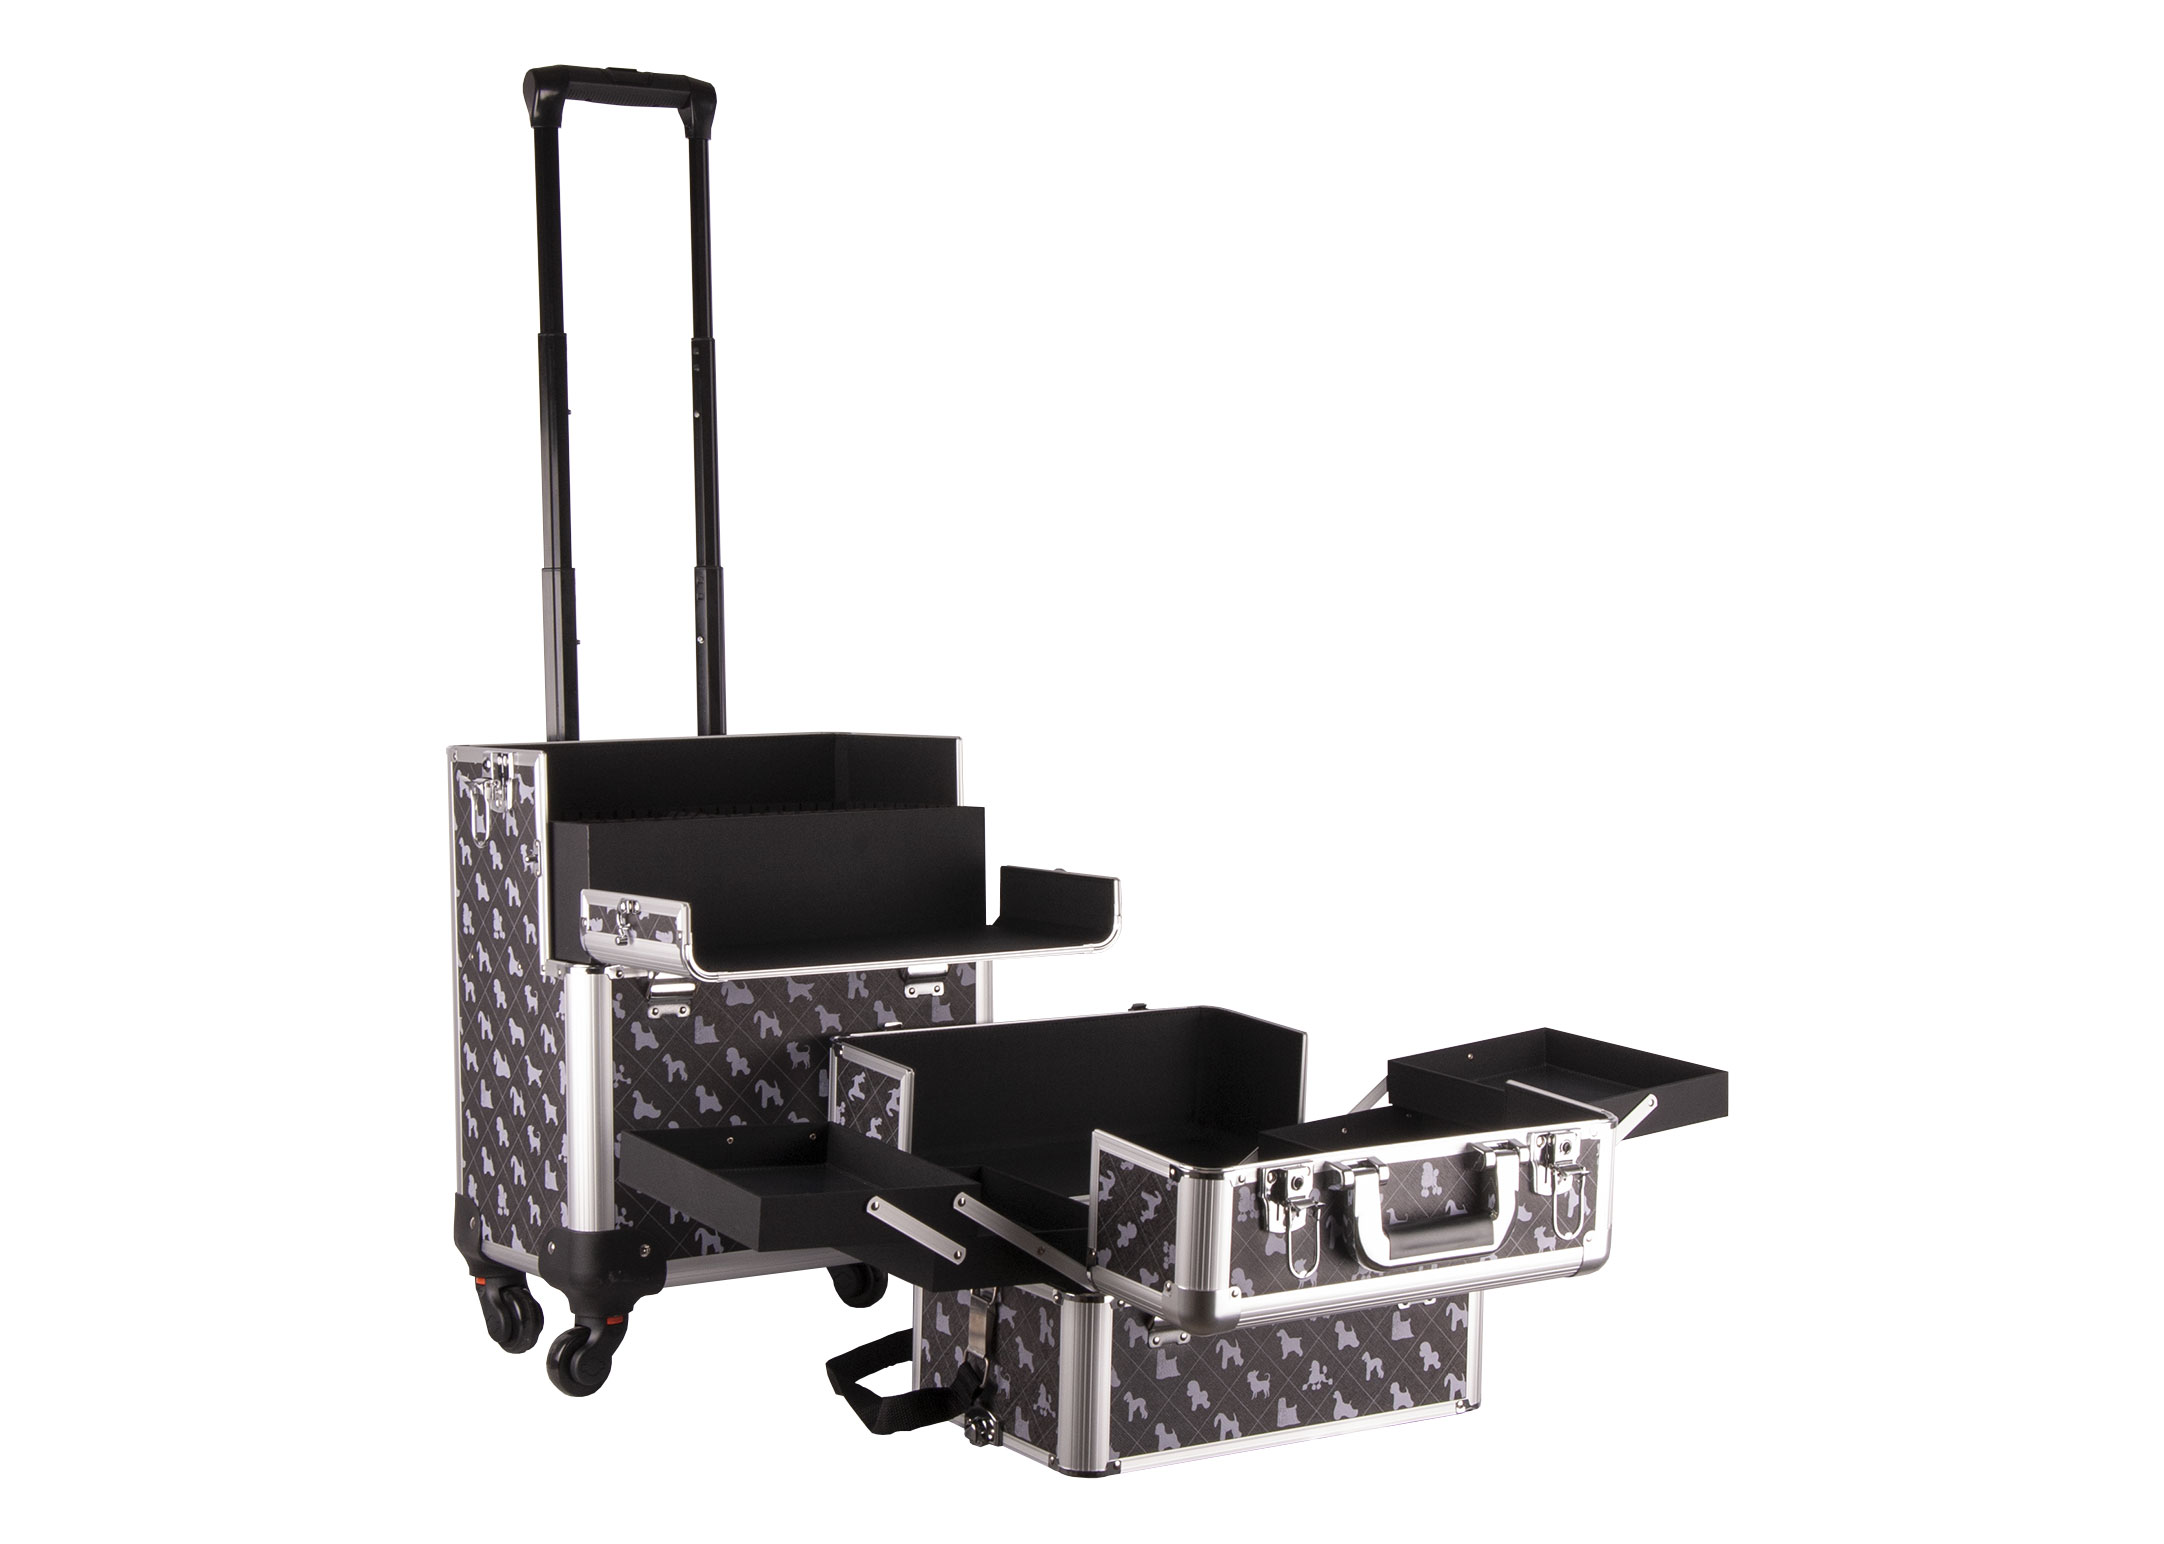 Groom-X Grooming Case XL 2 in one with 4 Wheels and Telescopic Handle with K-Design